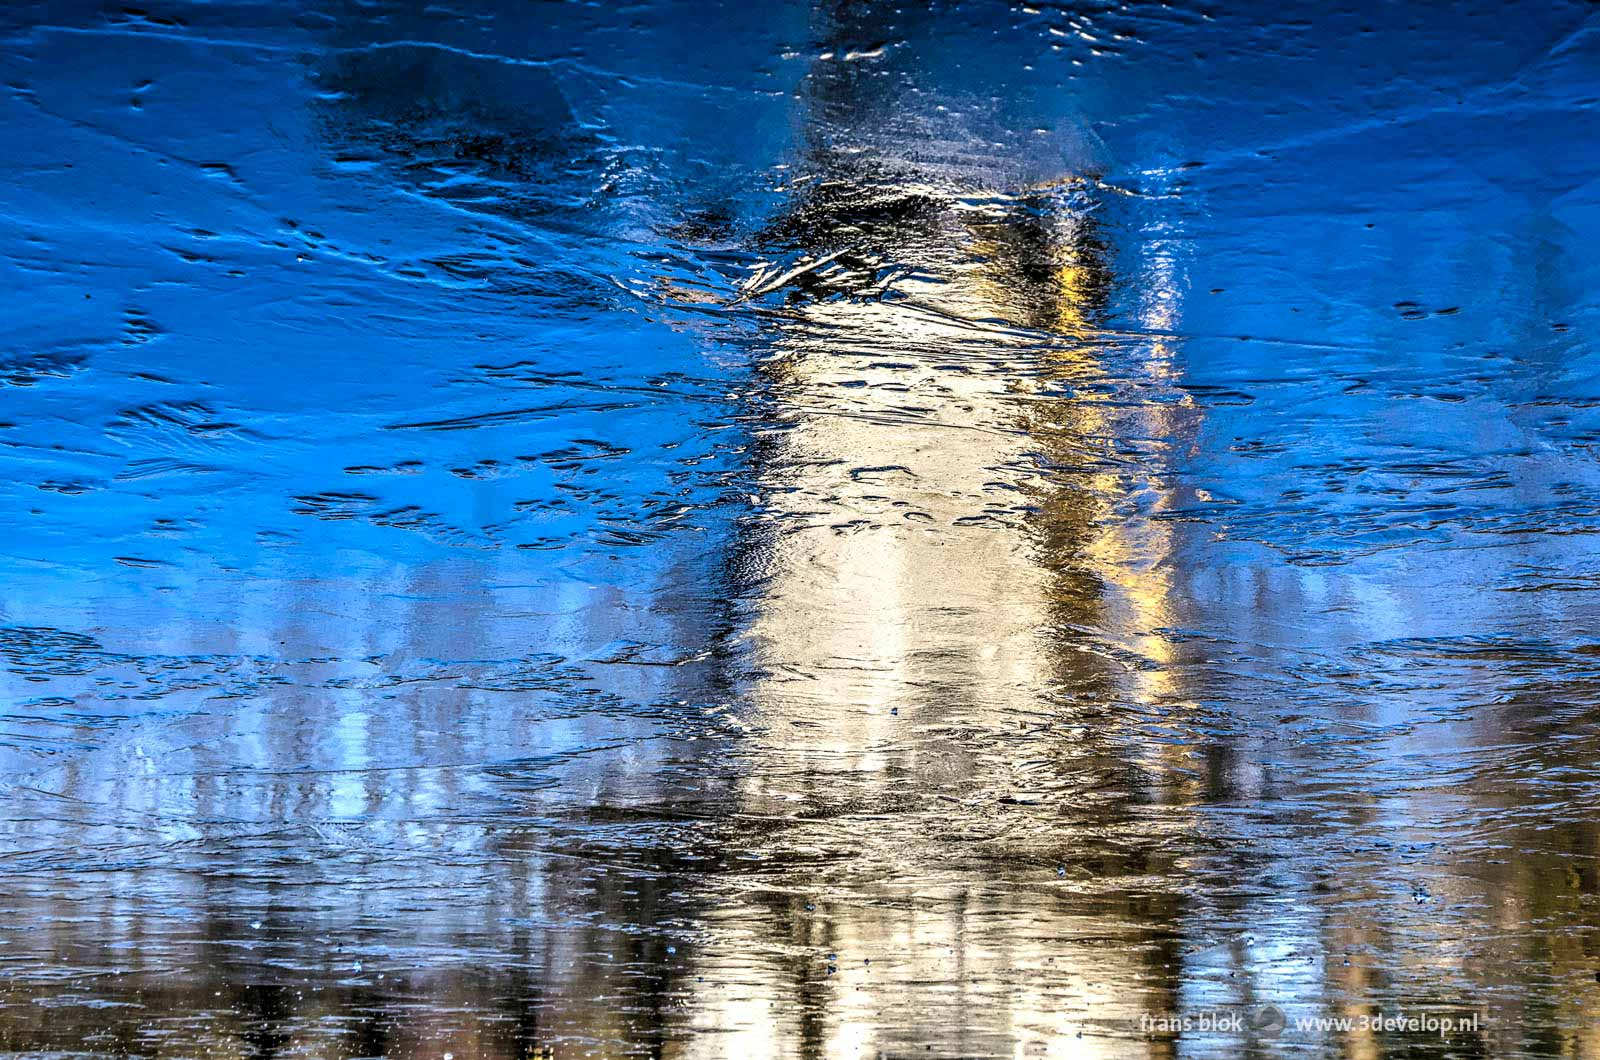 Reflection of the windmill at Kromme Zandweg in Rotterdam-Charlois in the ice on the pond